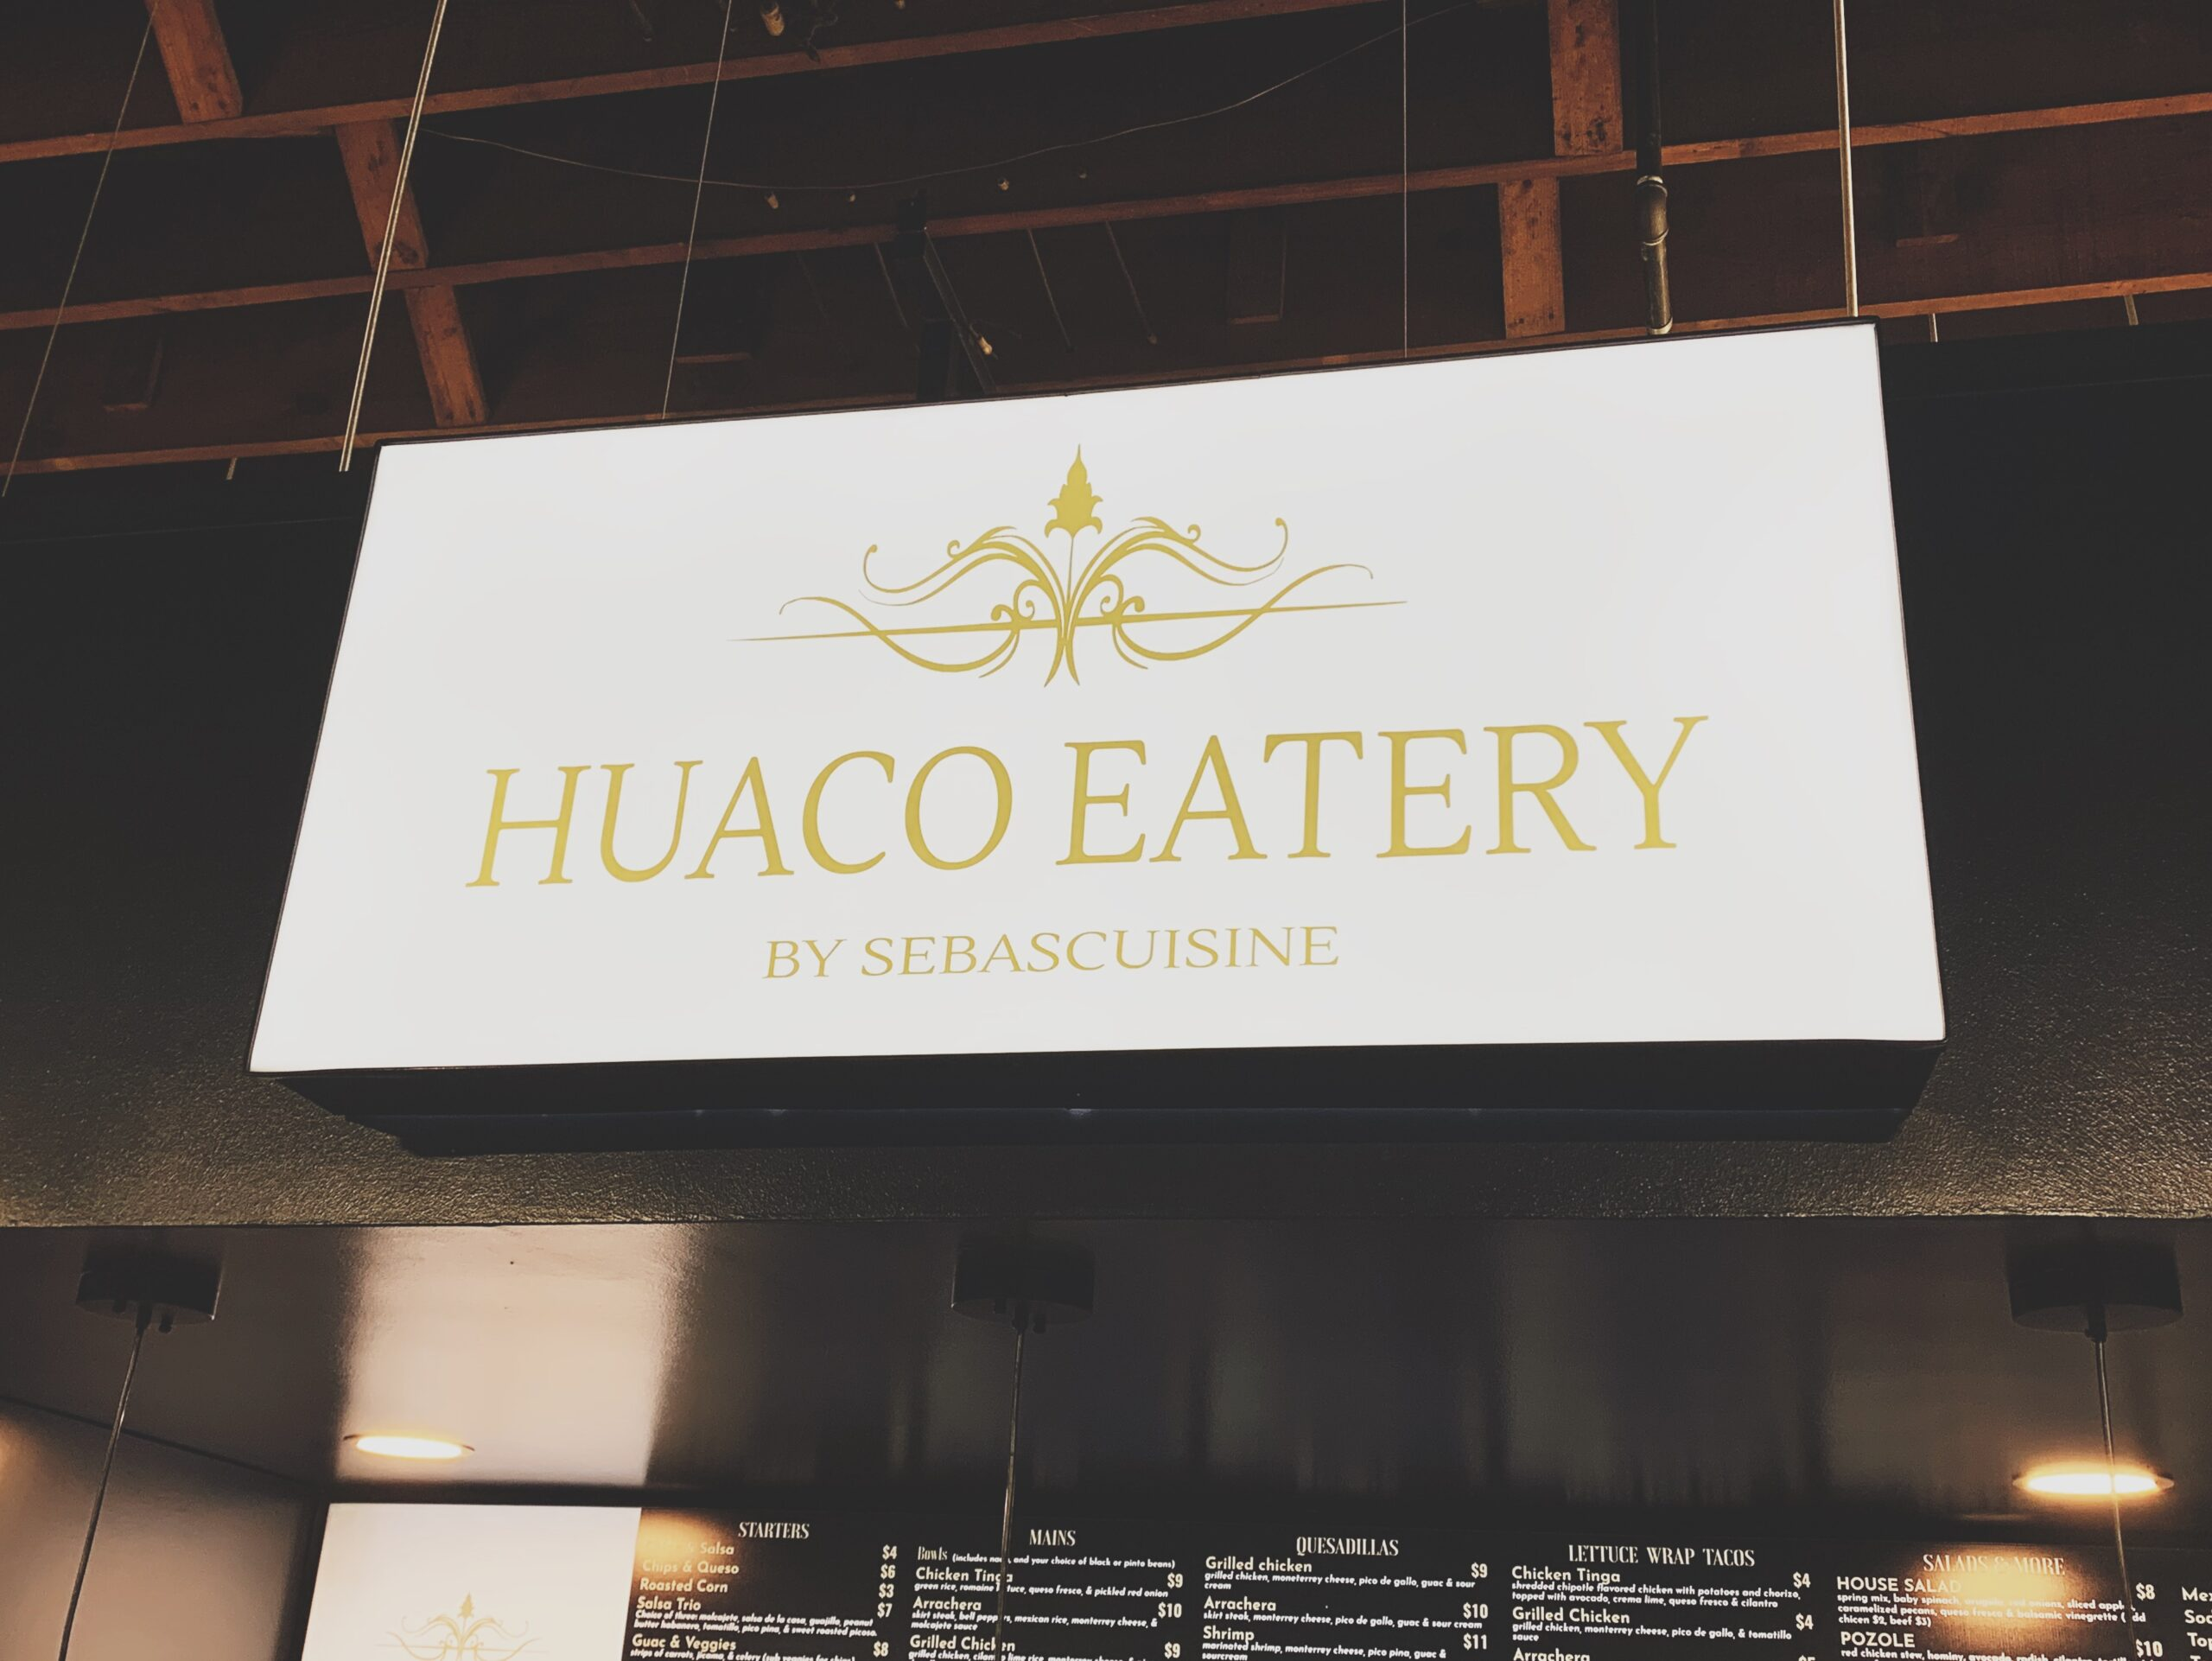 Huaco Eatery - Union Hall